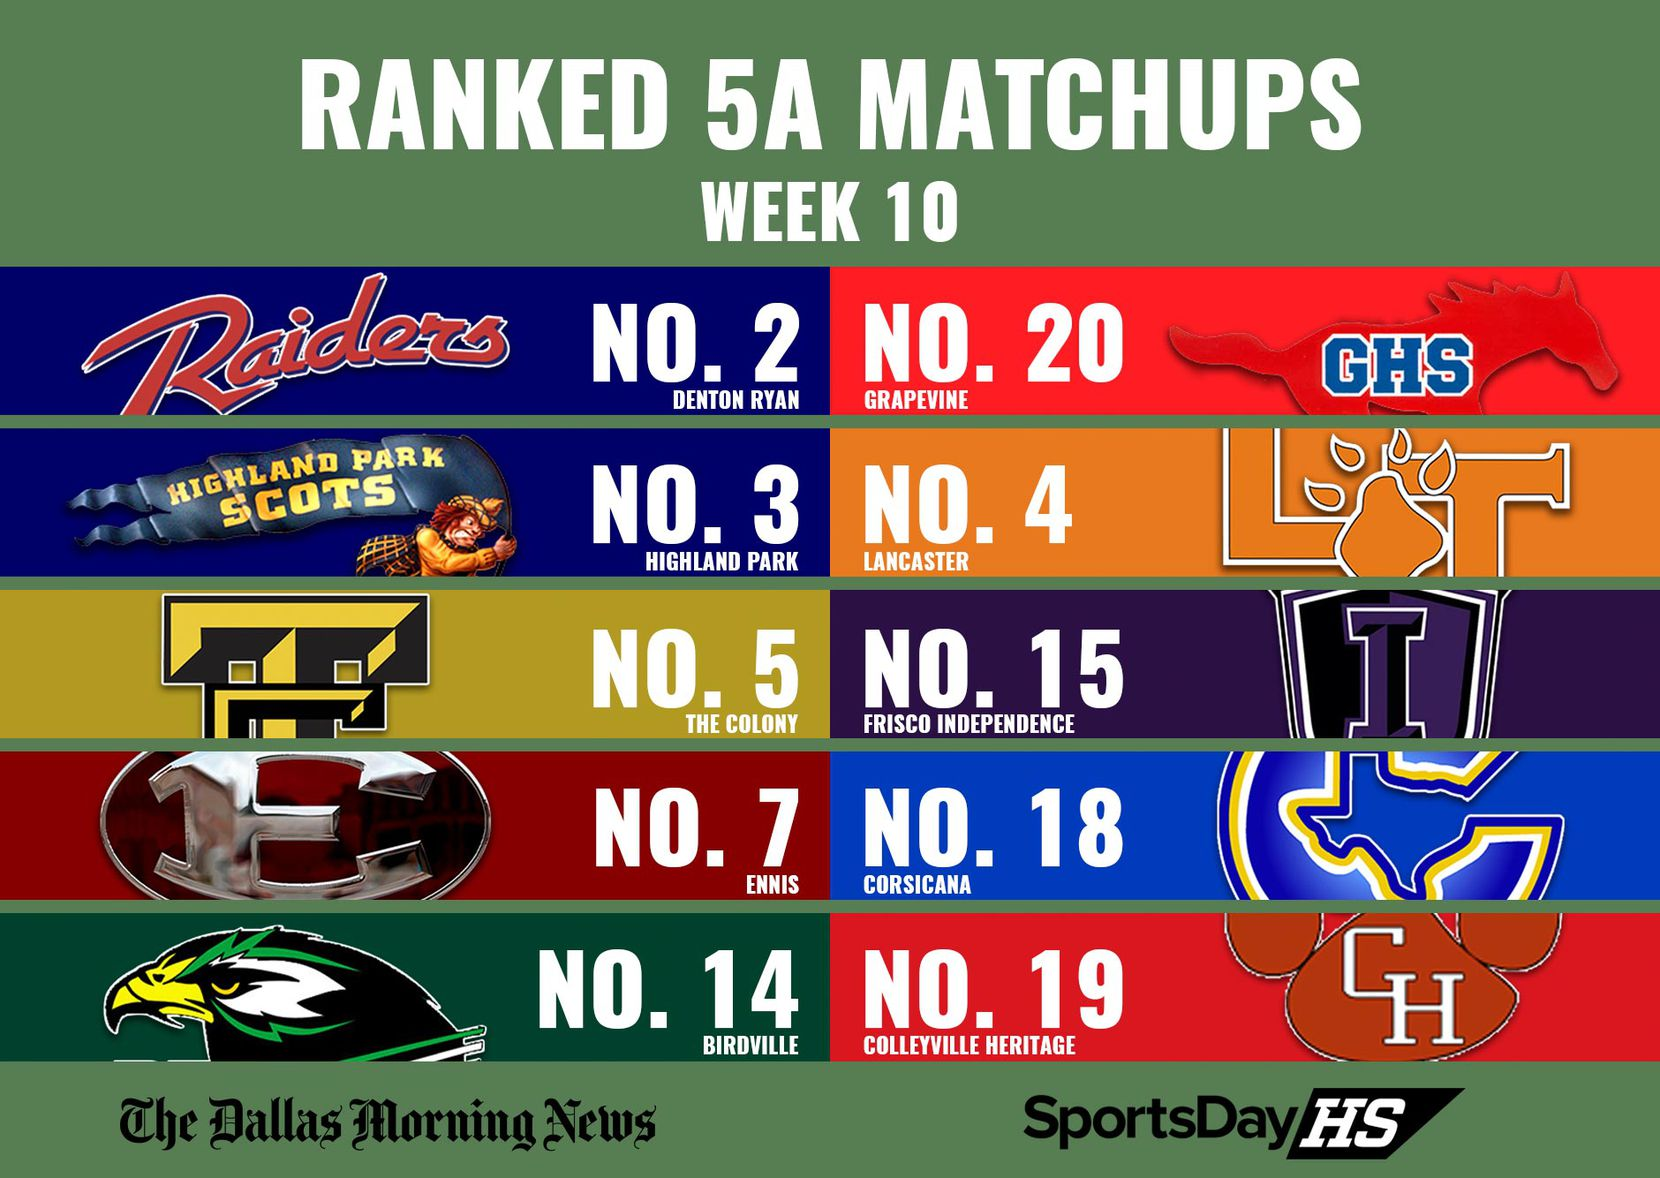 Ranked 5A matchups in Week 10.